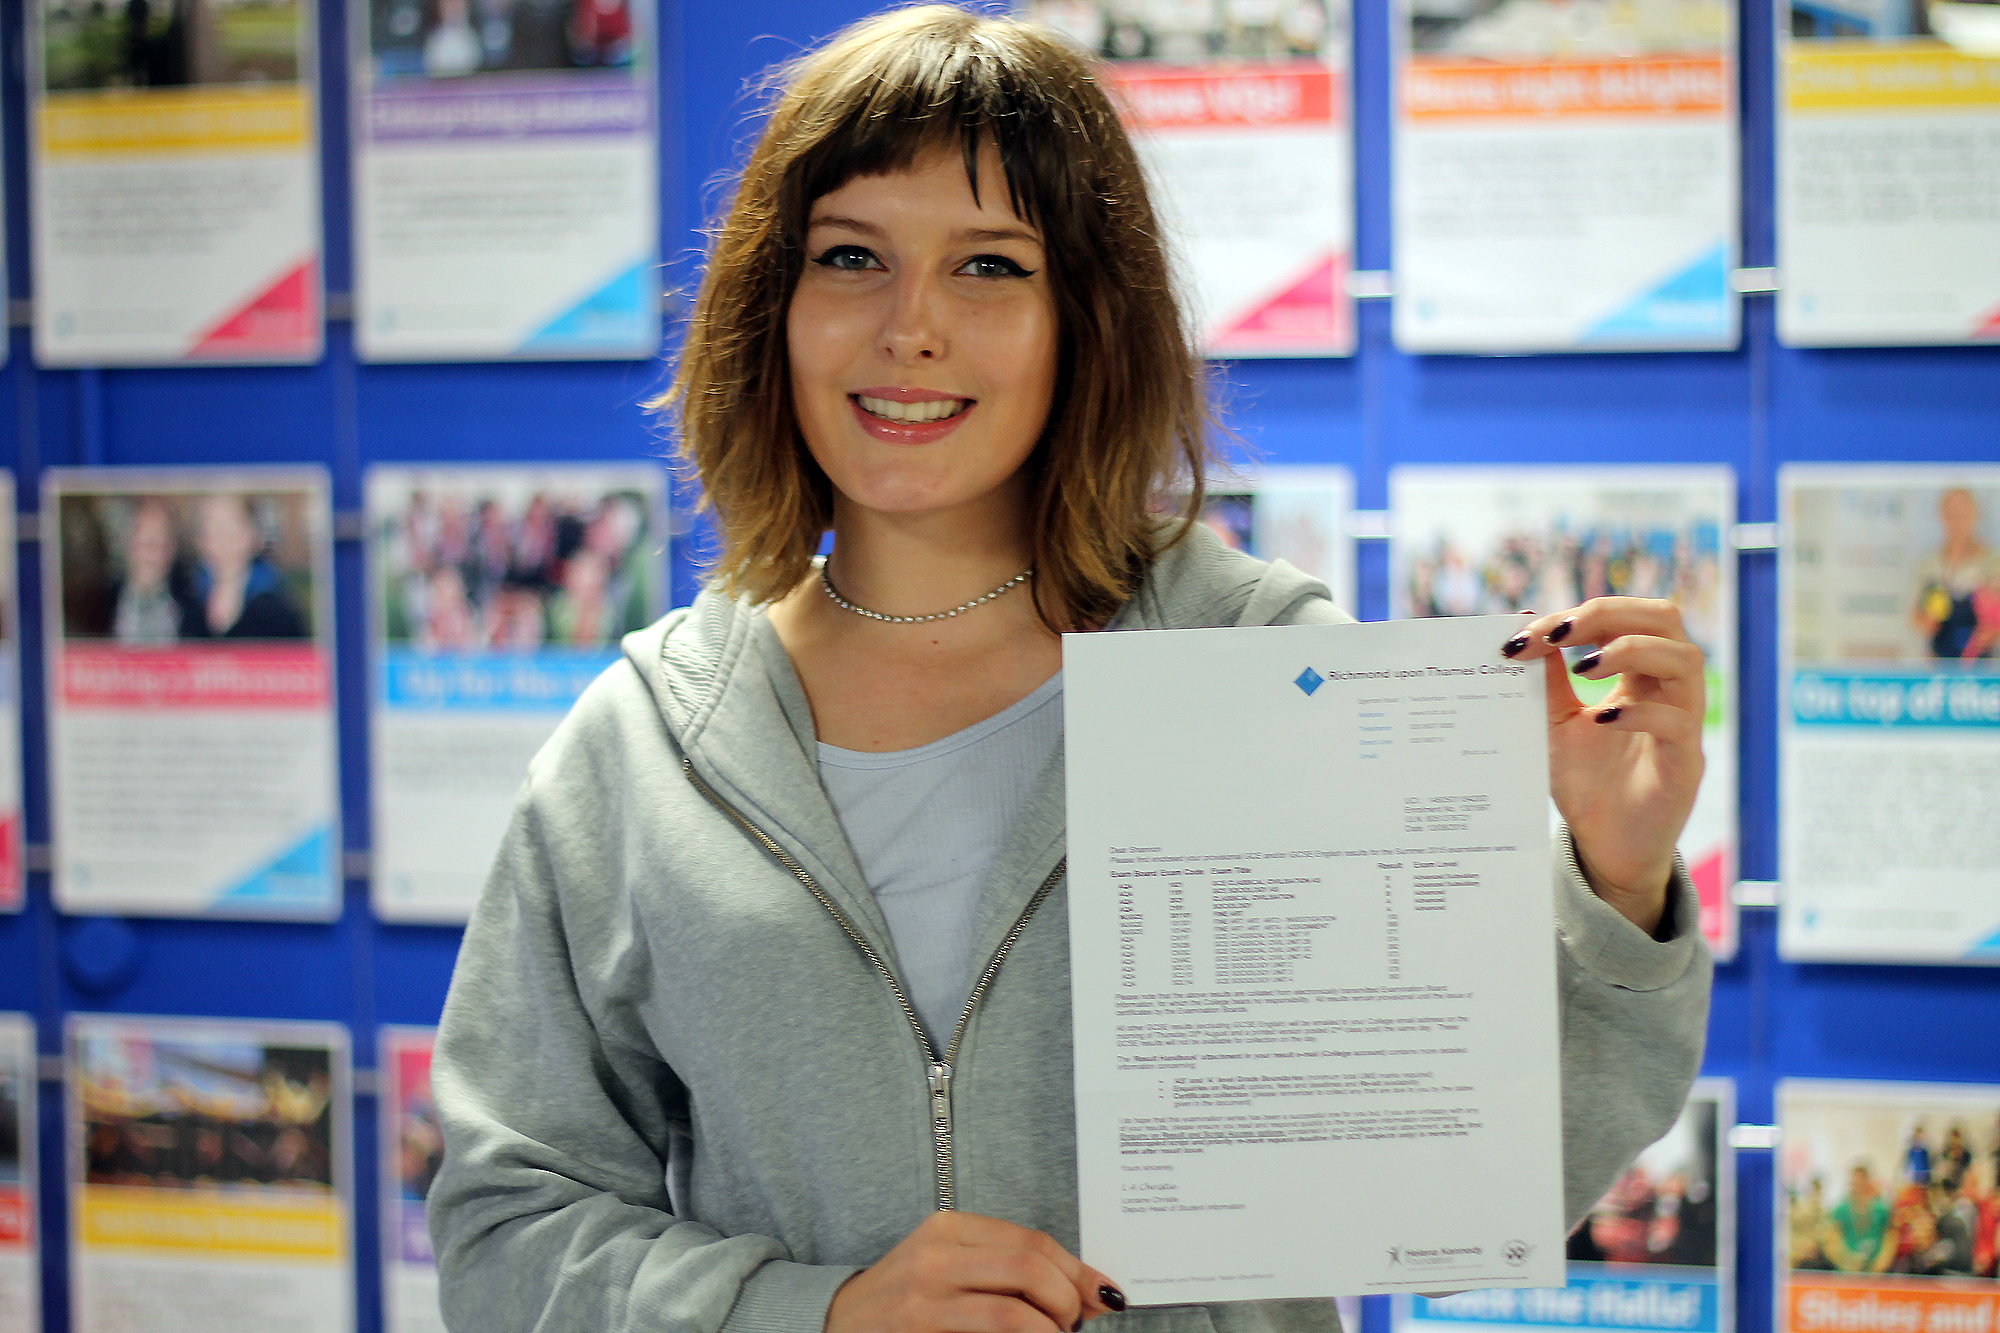 Shannon Kopinski A Level and BTEC qualifications explained